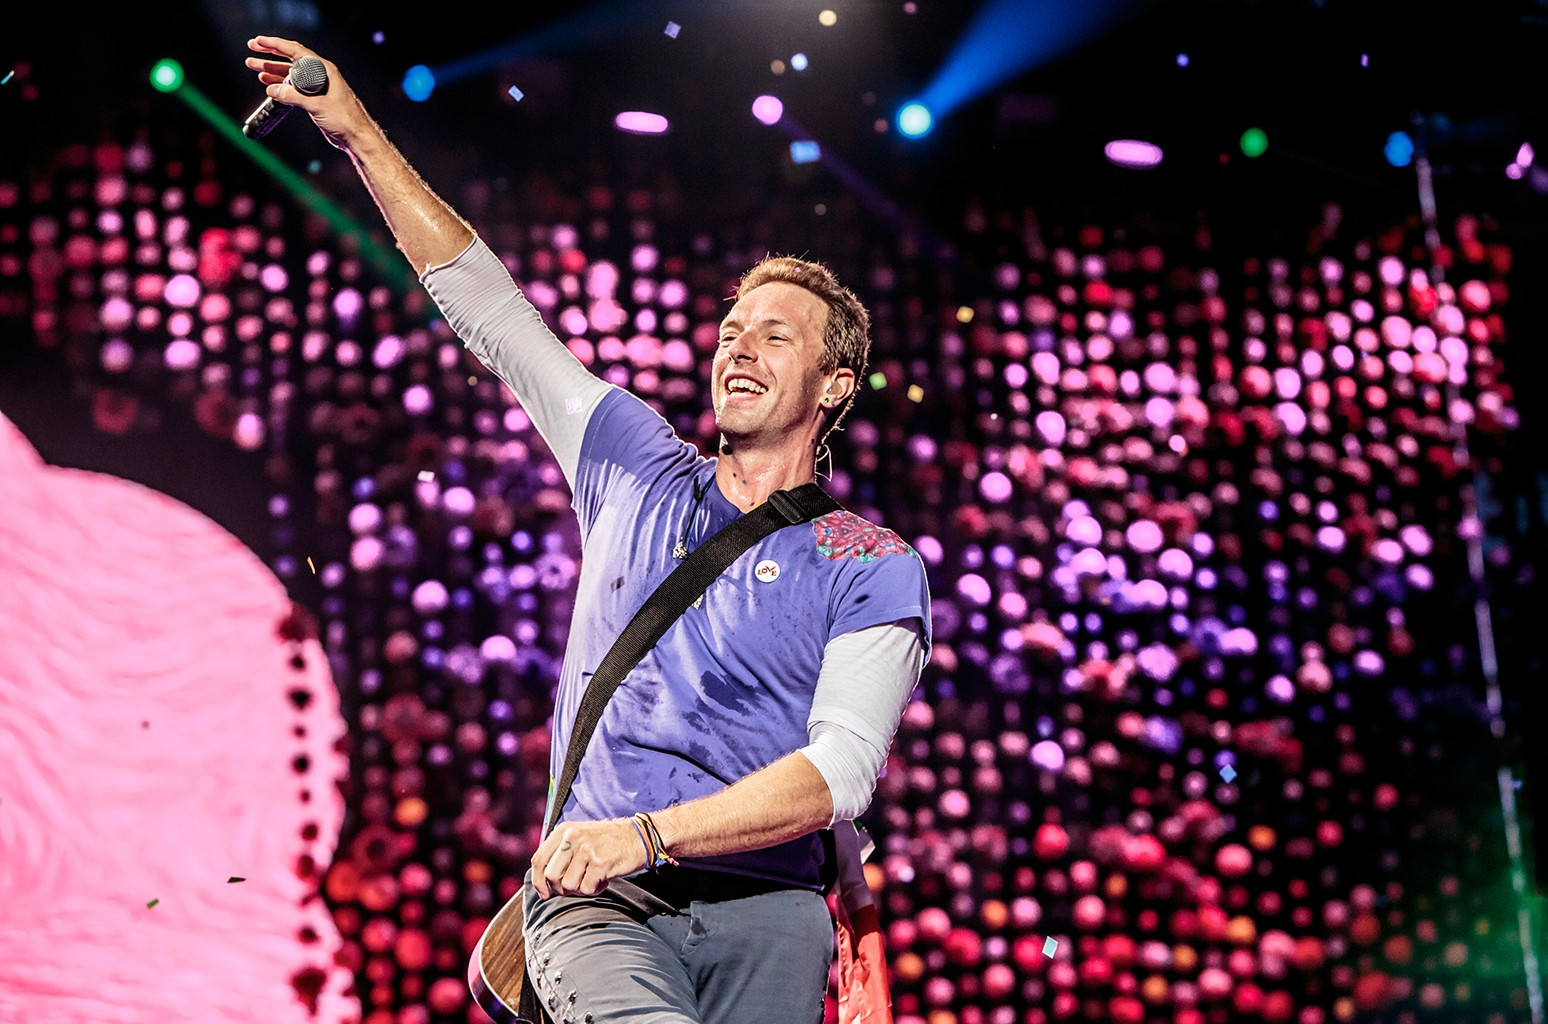 Chris Martin of Coldplay performs on July 3, 2017 in Milan, Italy.